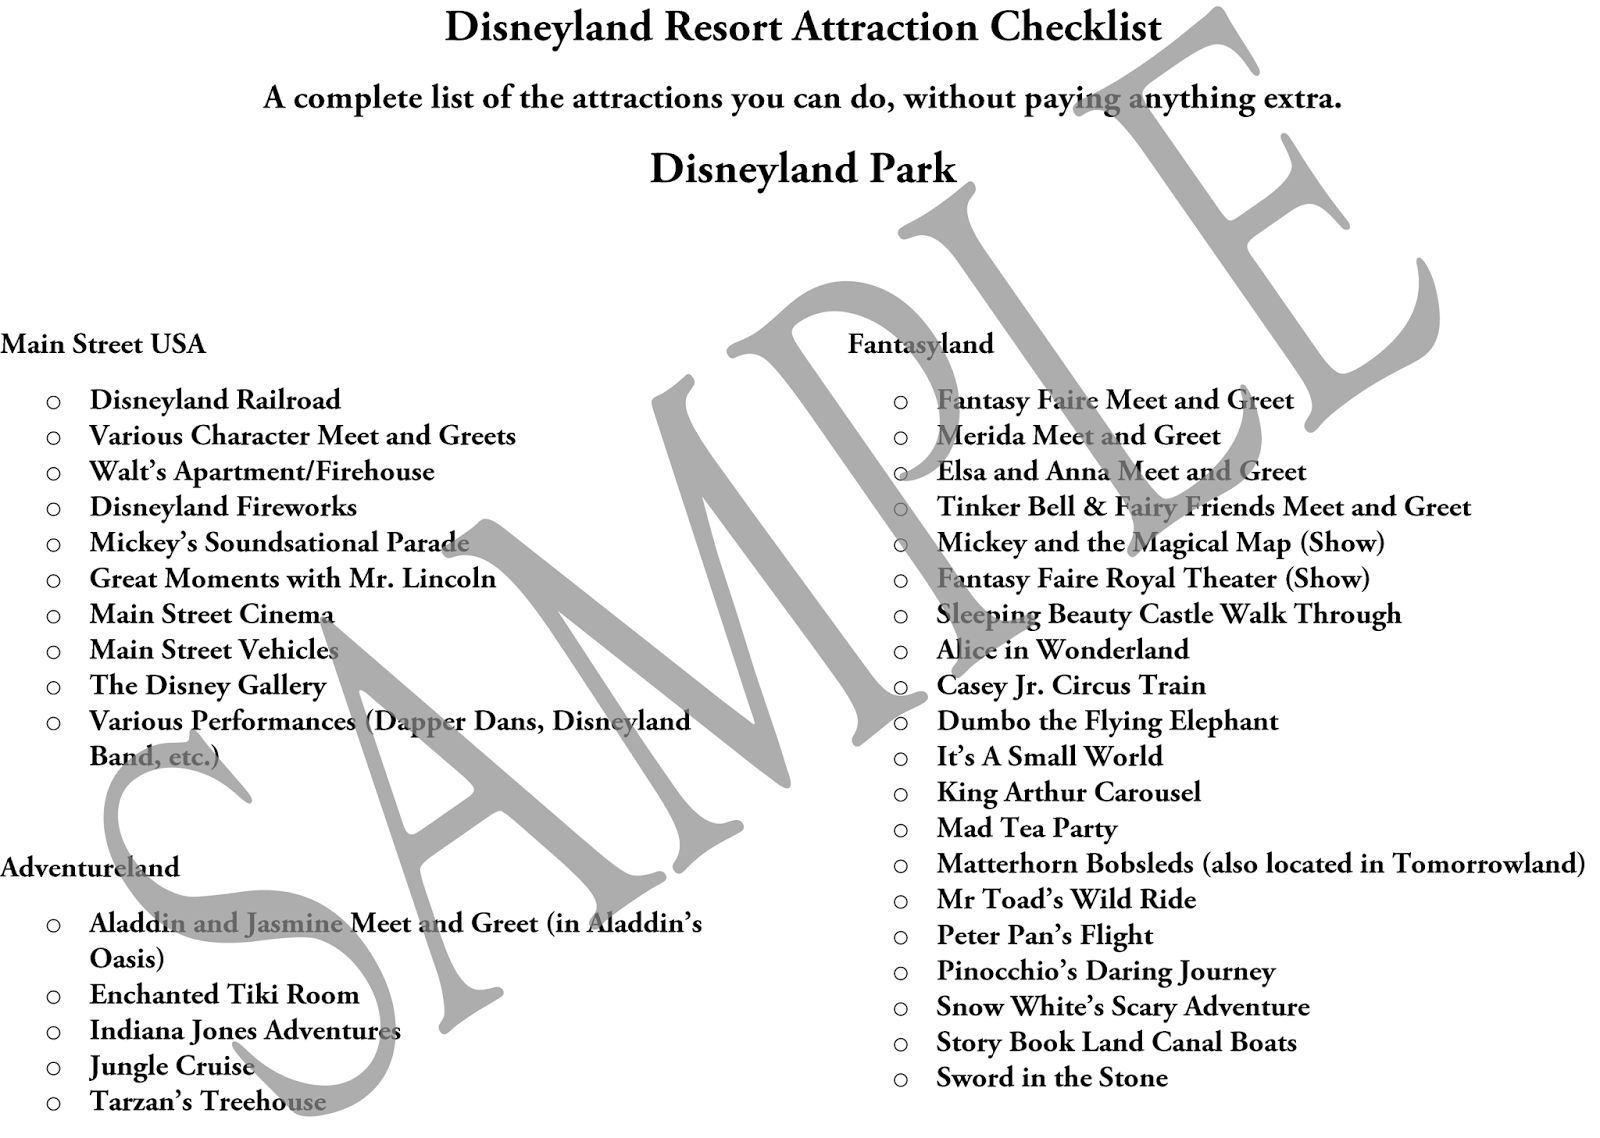 Get a checklist of every Disneyland Resort Attraction that is included with your admission from LoveOurDisney.com